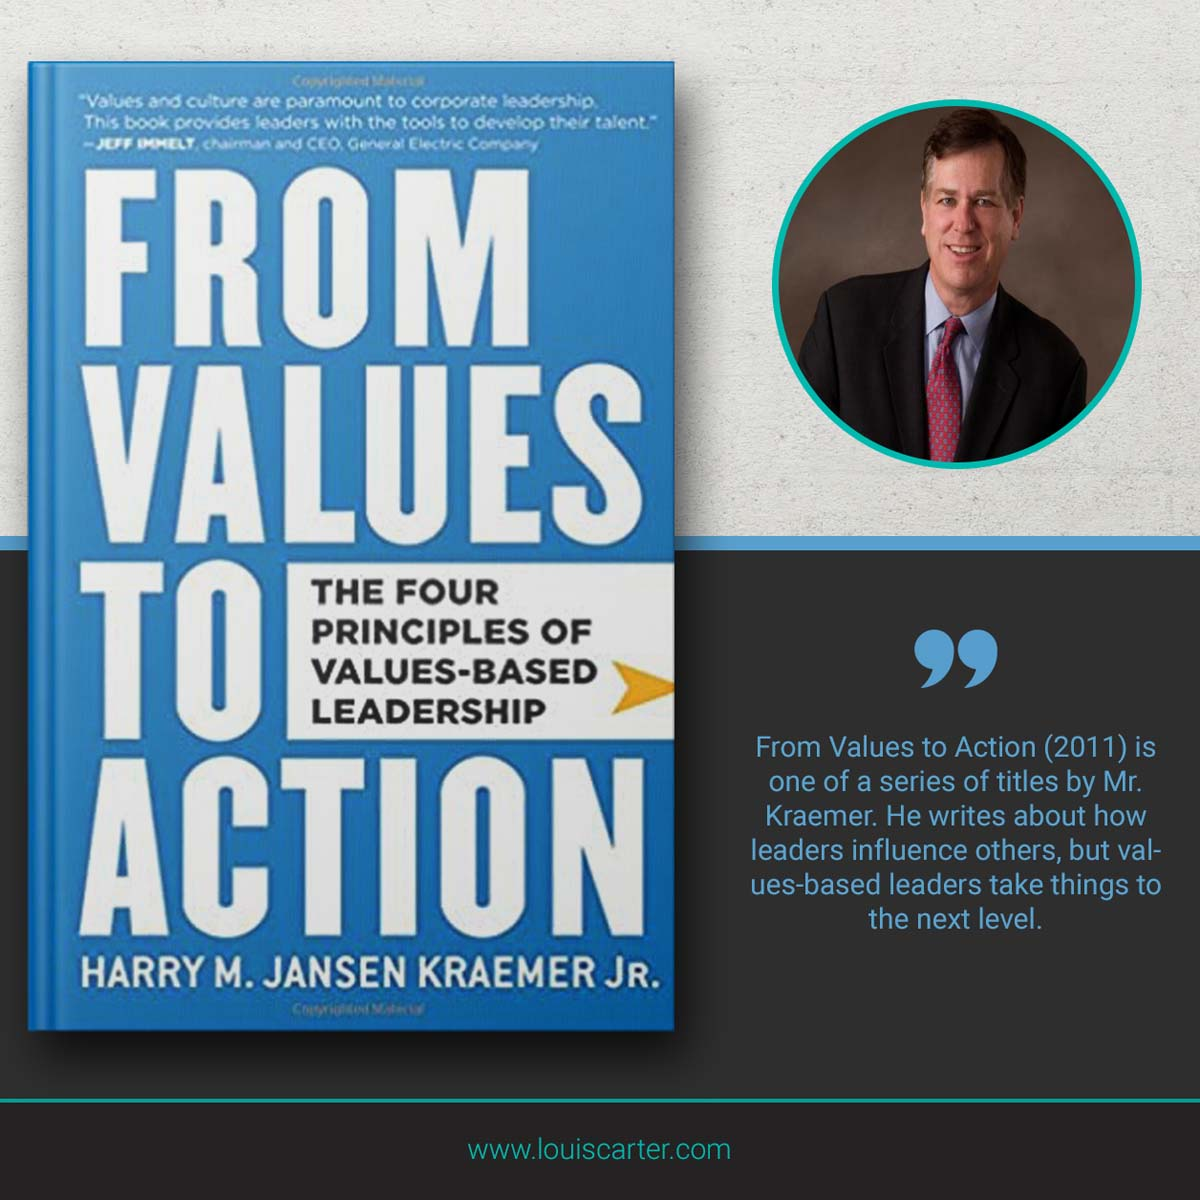 Image of leadership book From Values to Action by Harry M Kraemer.